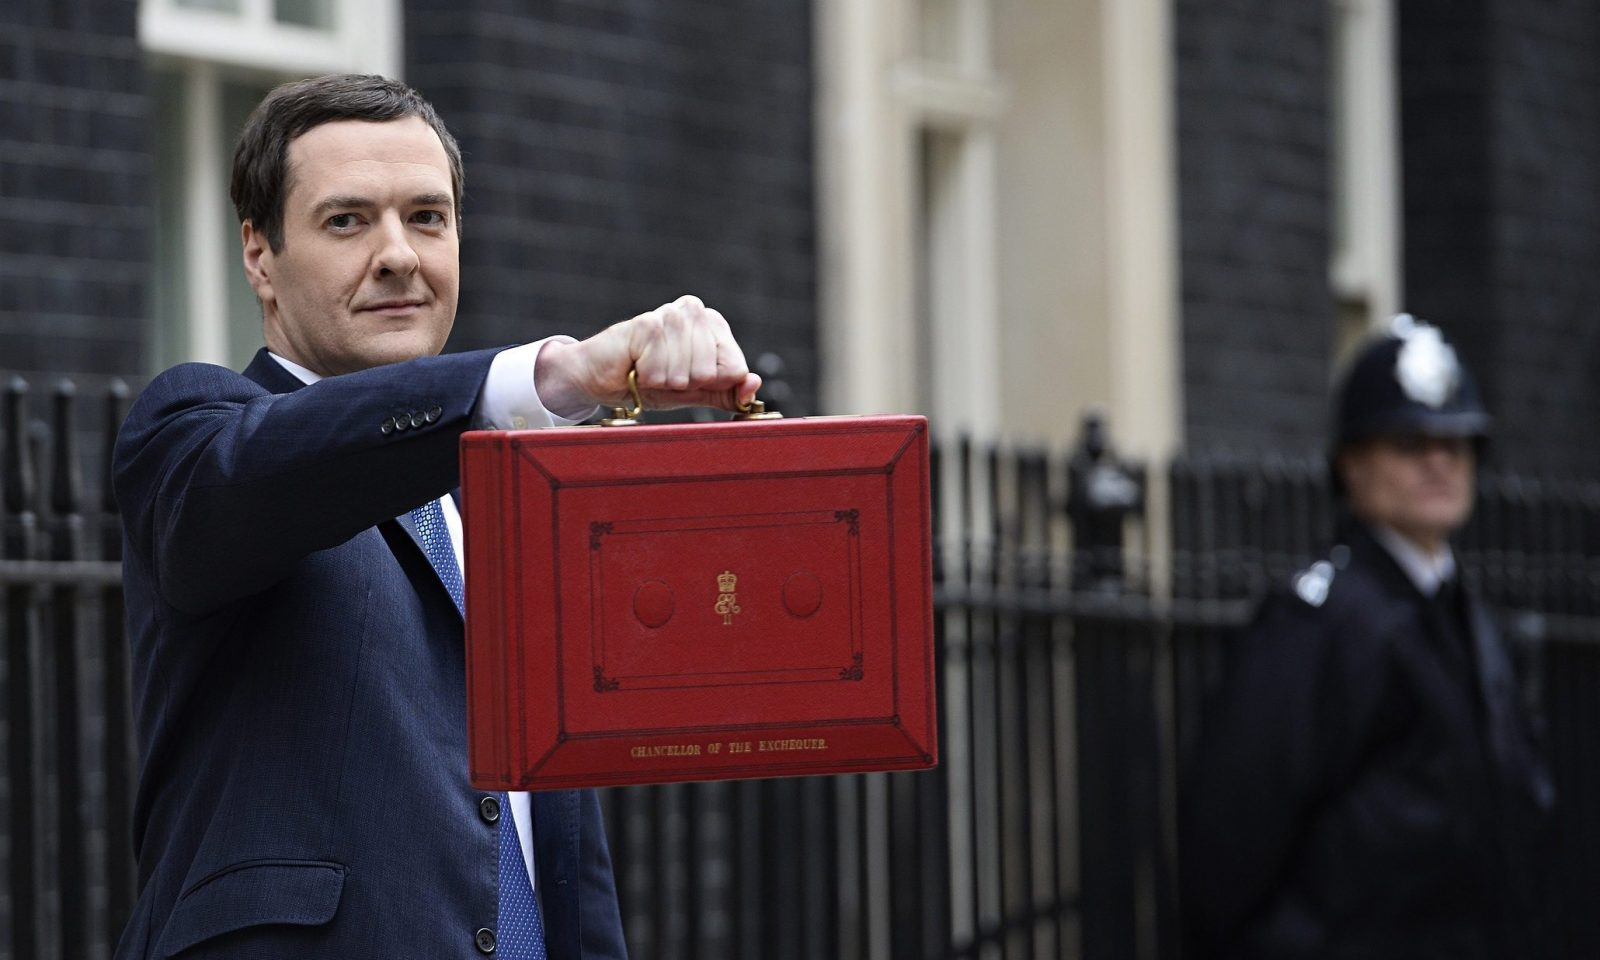 Osborne at the Standard: a slap in the face for young journalists everywhere